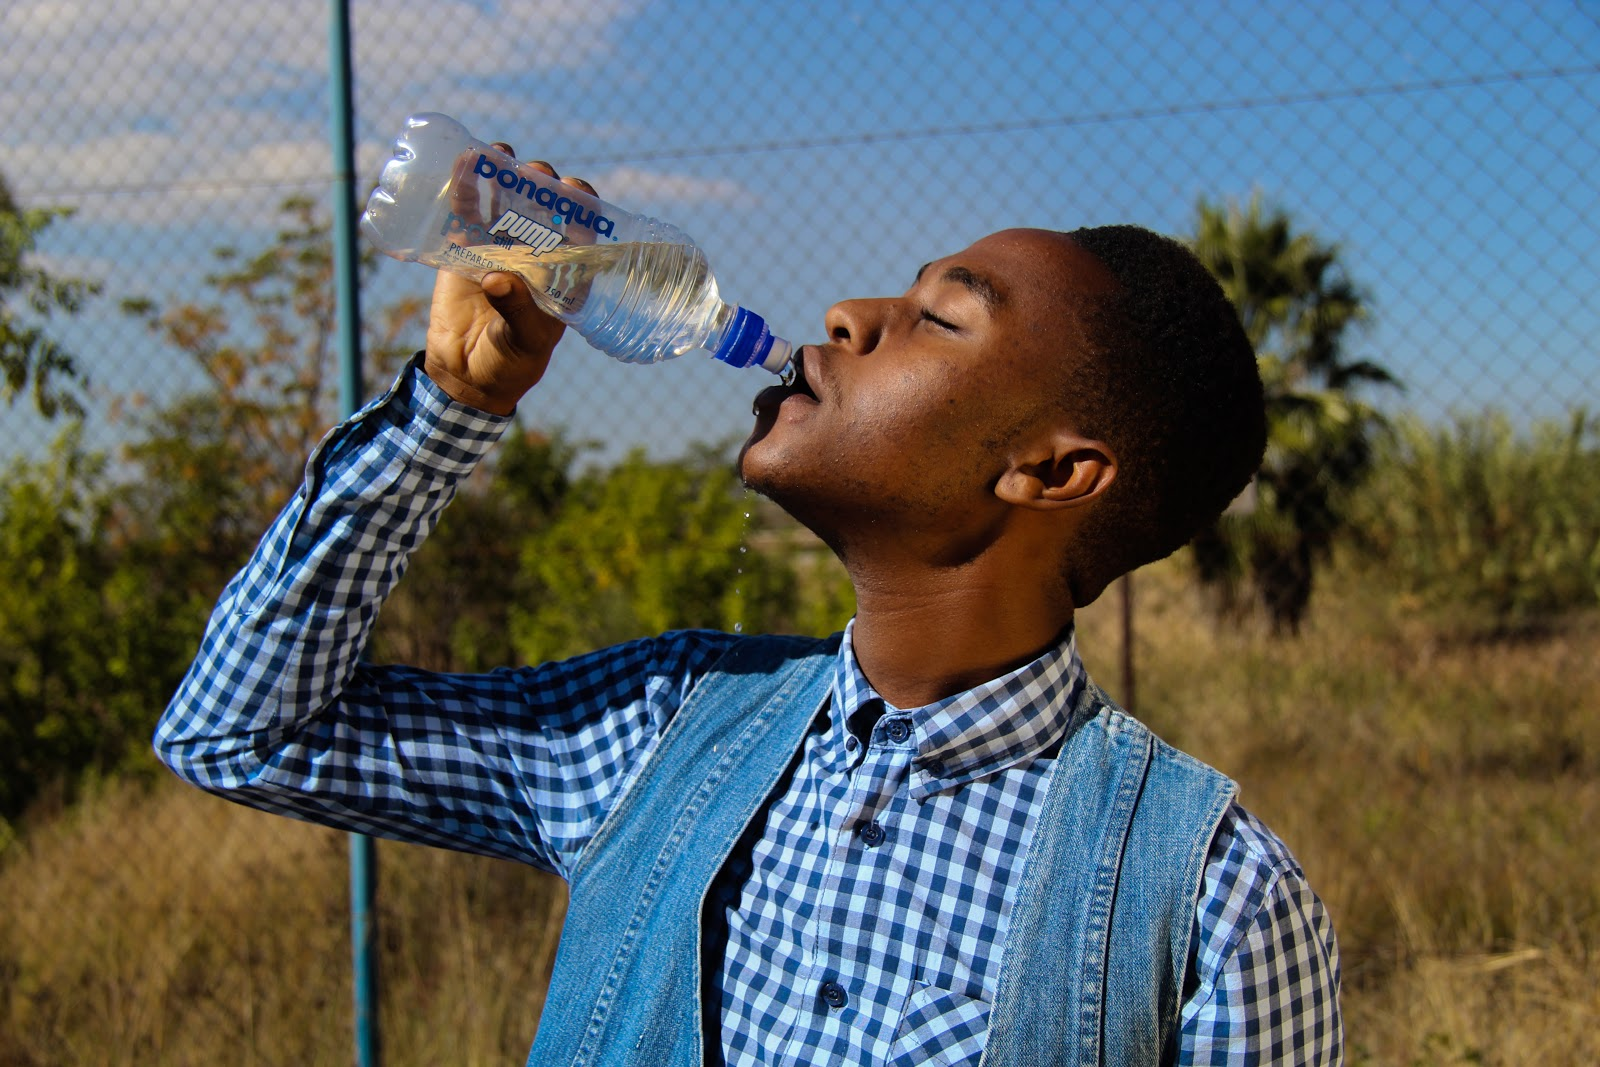 man-drinking-from-water-bottle